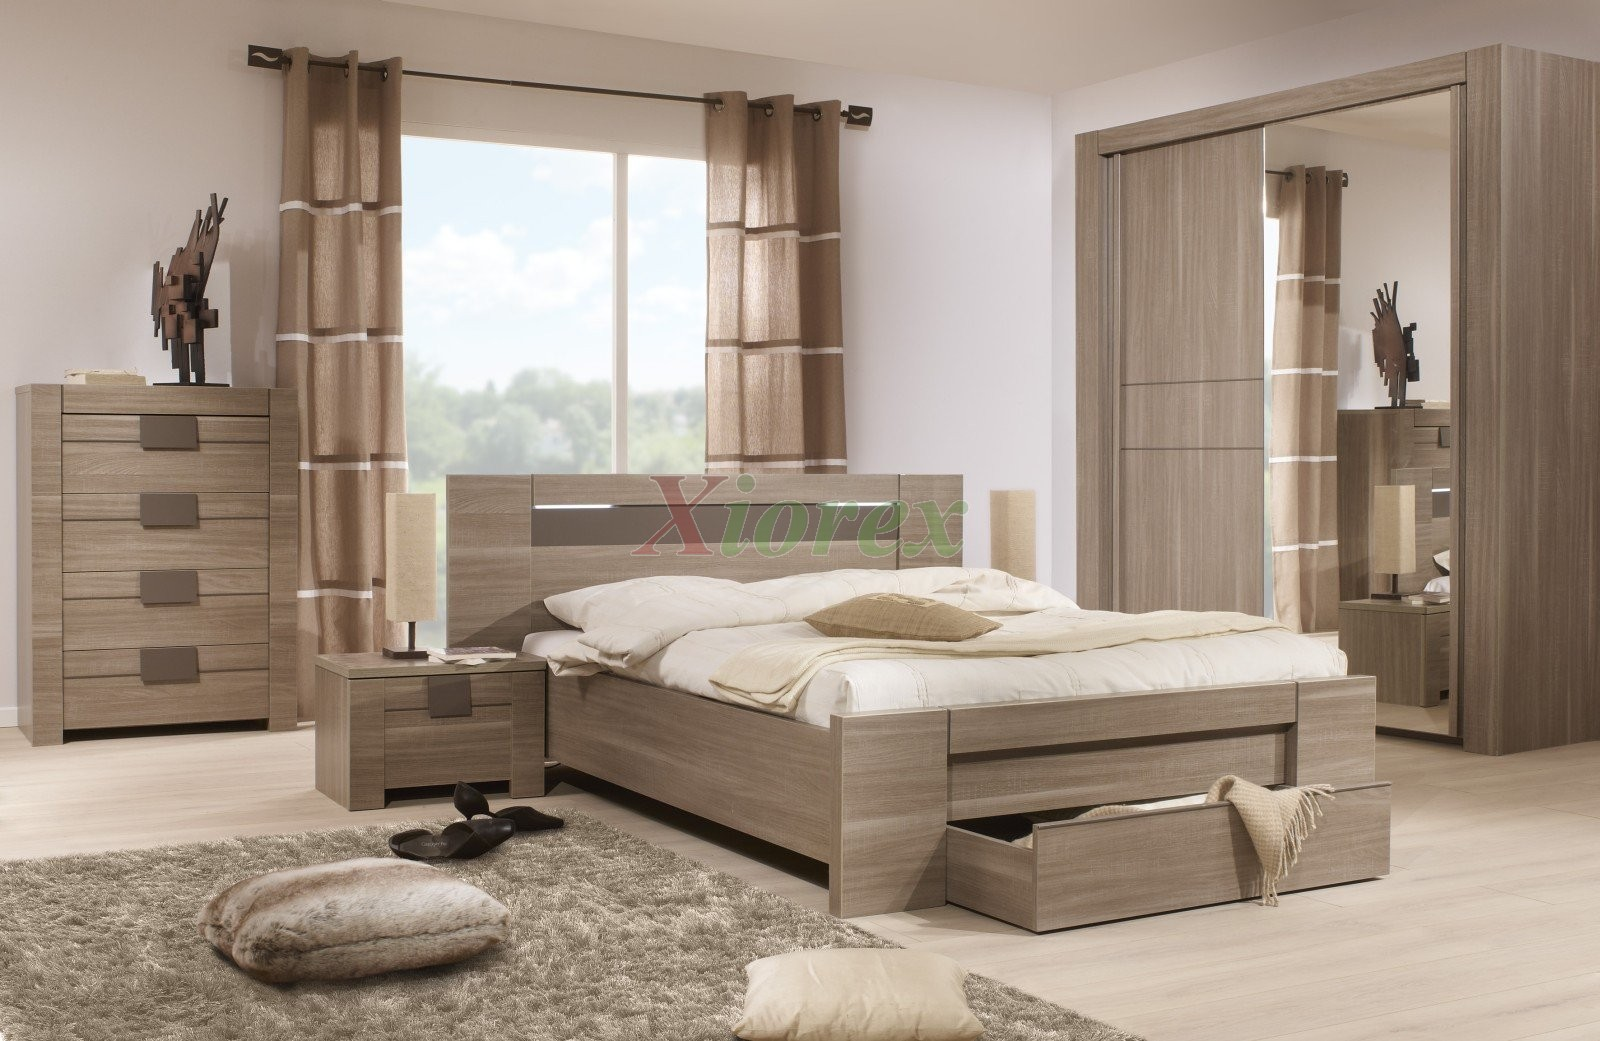 master bedroom moka beds gami moka master bedroom sets by 18196 | master bedroom set